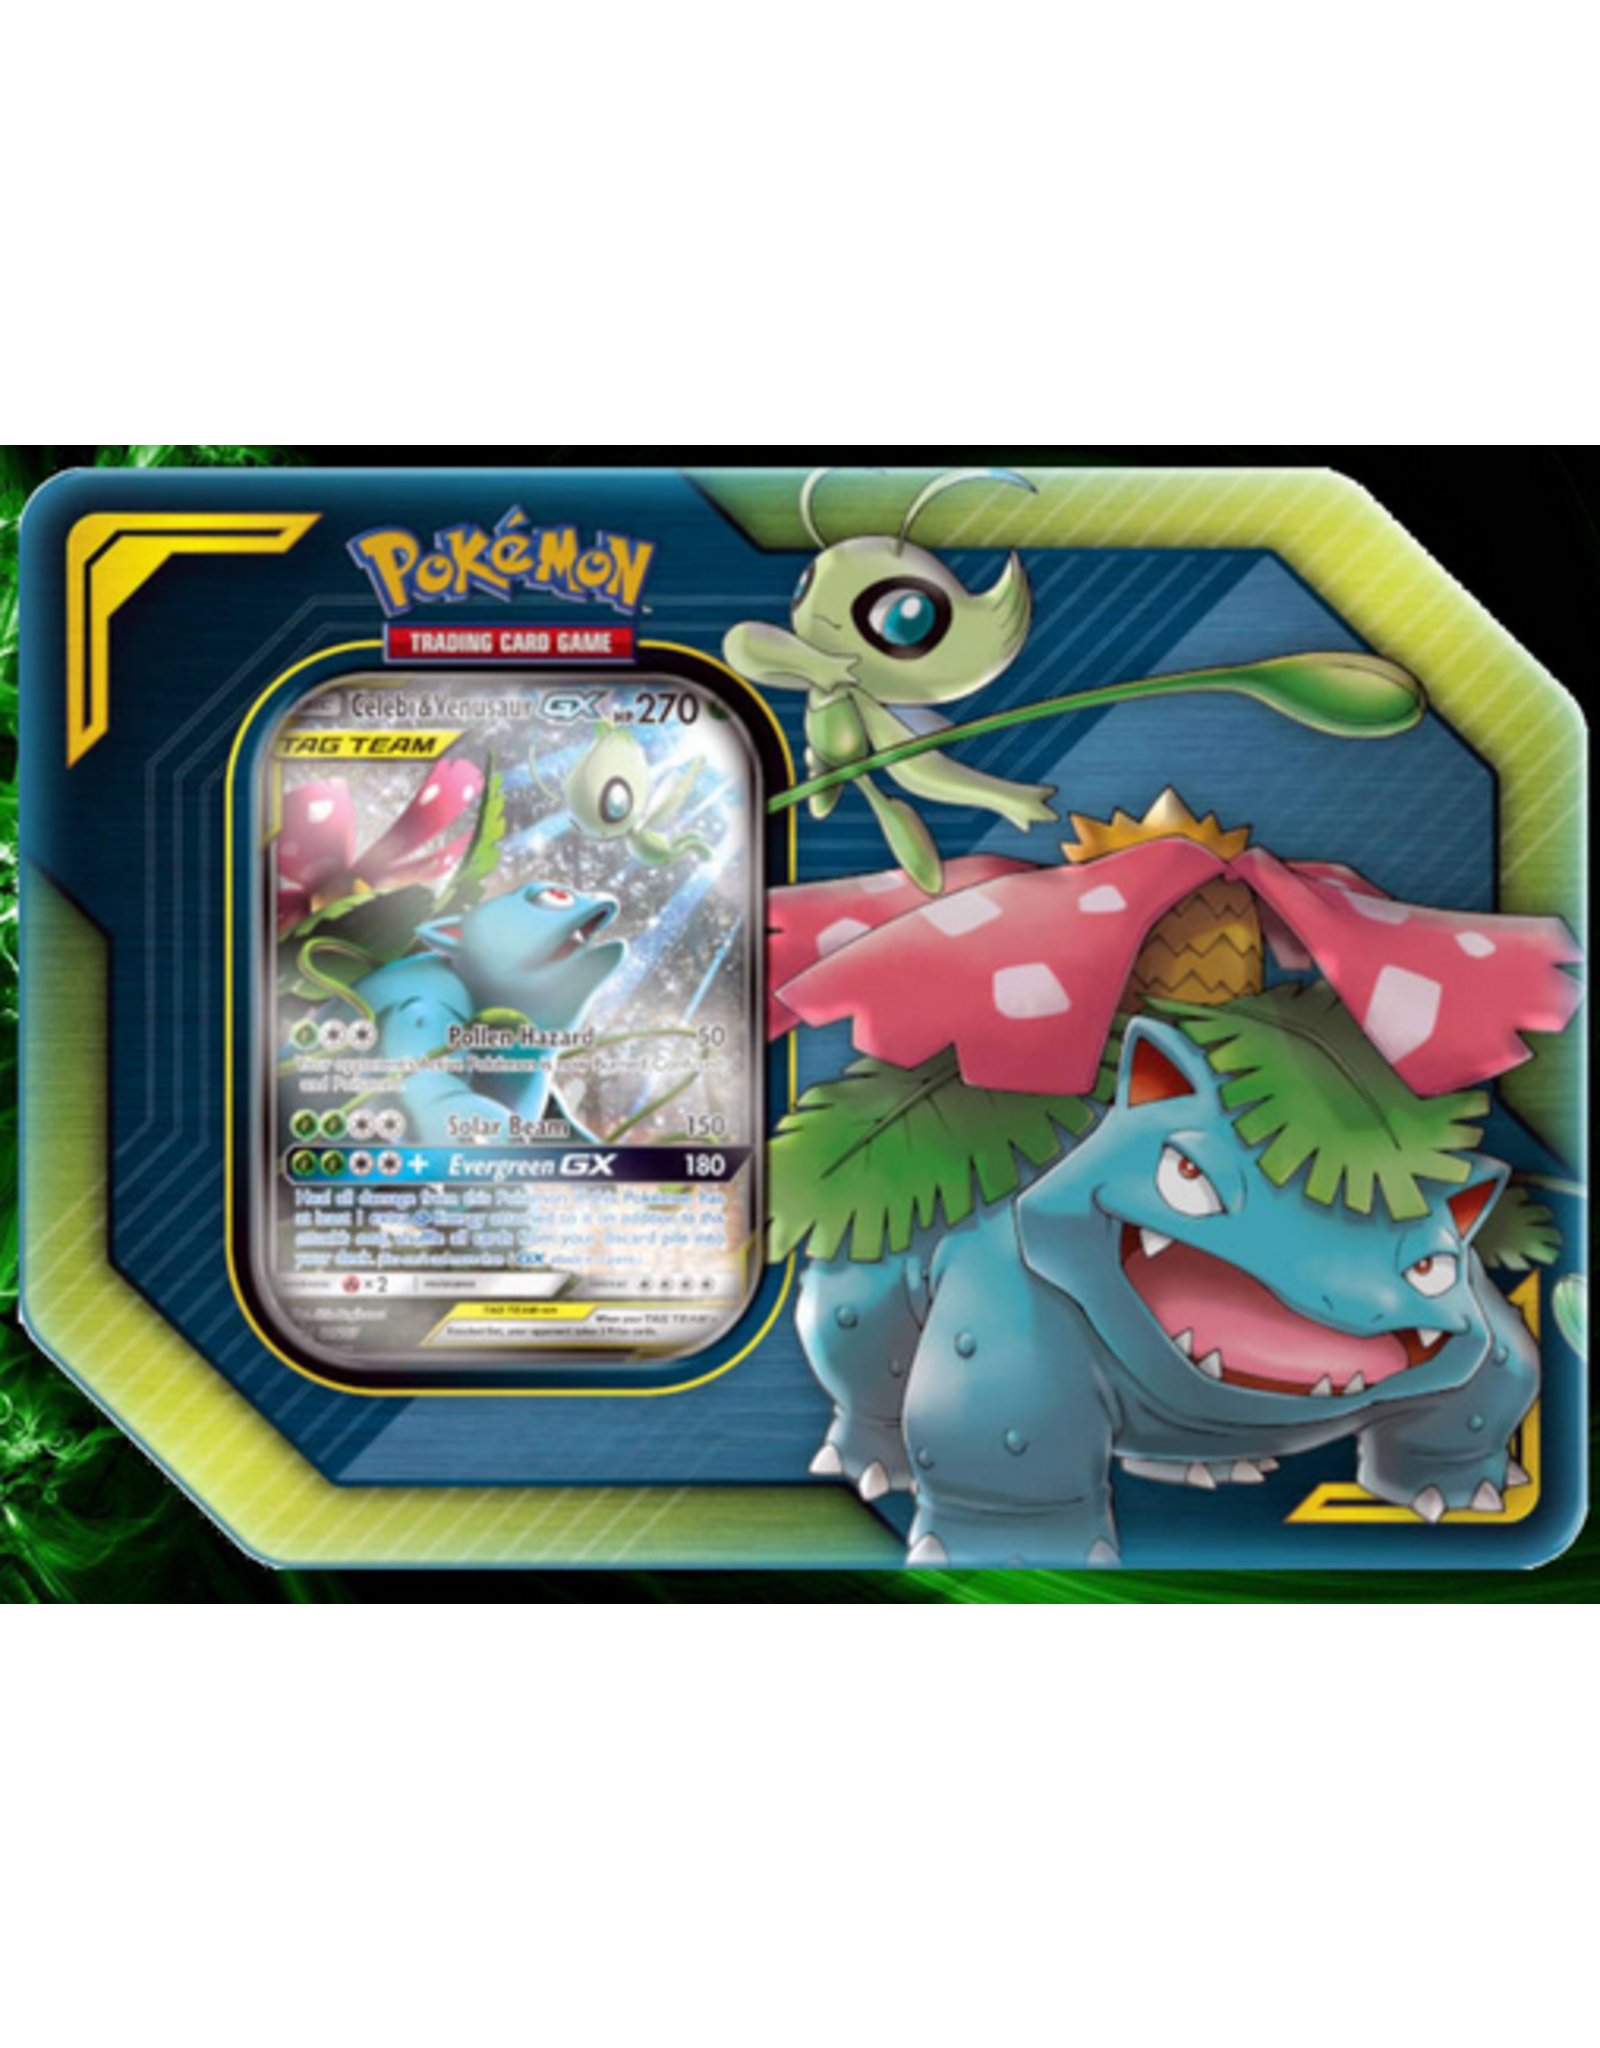 Pokémon Pokemon Tag Team Tin: Celebi & Venusaur